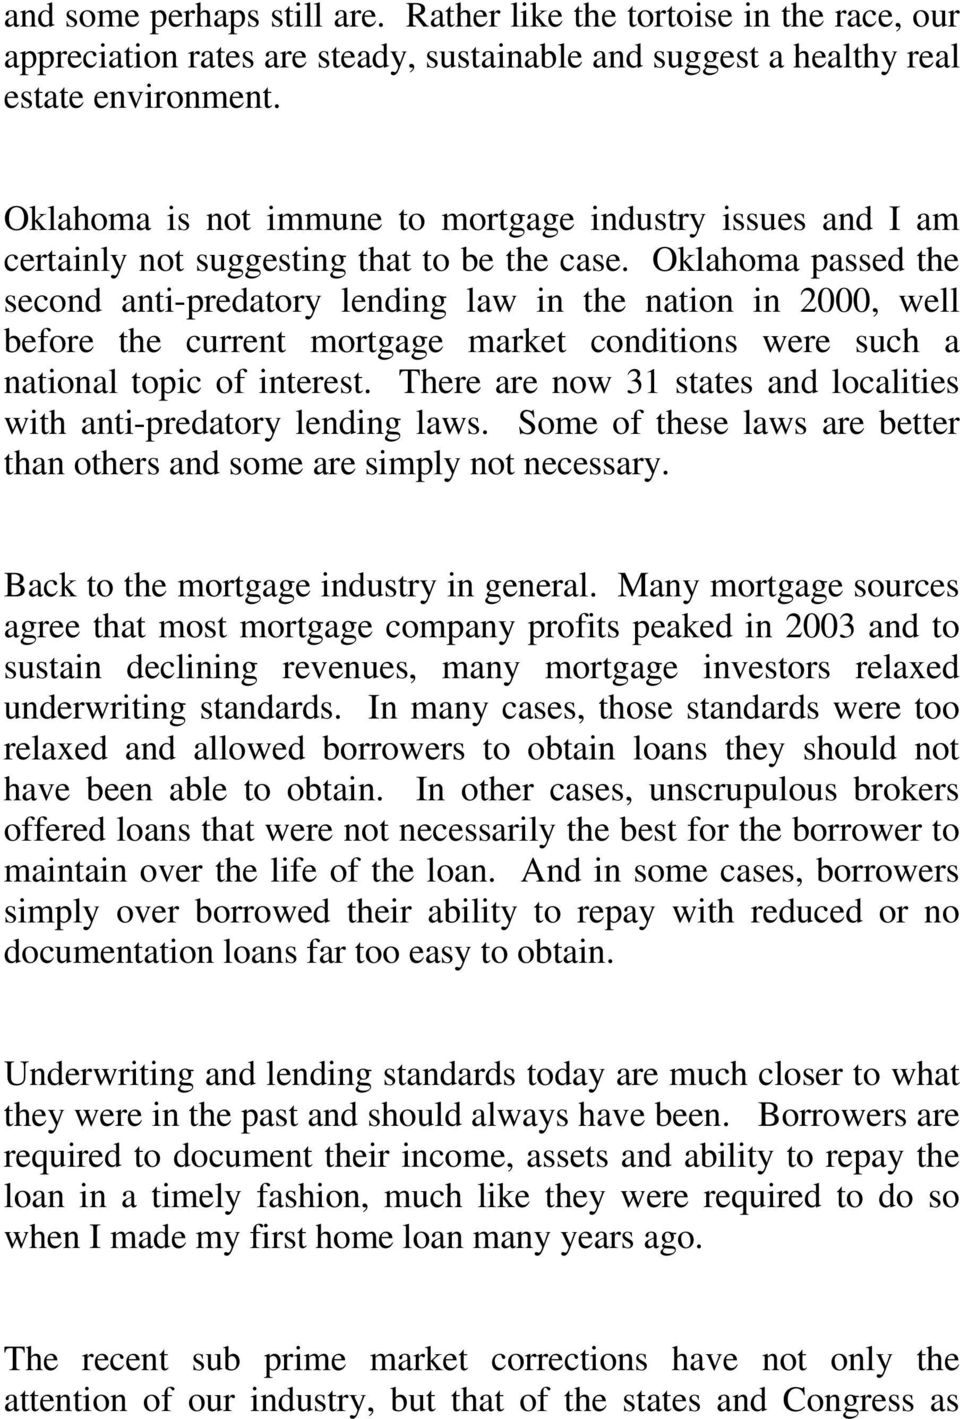 Oklahoma passed the second anti-predatory lending law in the nation in 2000, well before the current mortgage market conditions were such a national topic of interest.